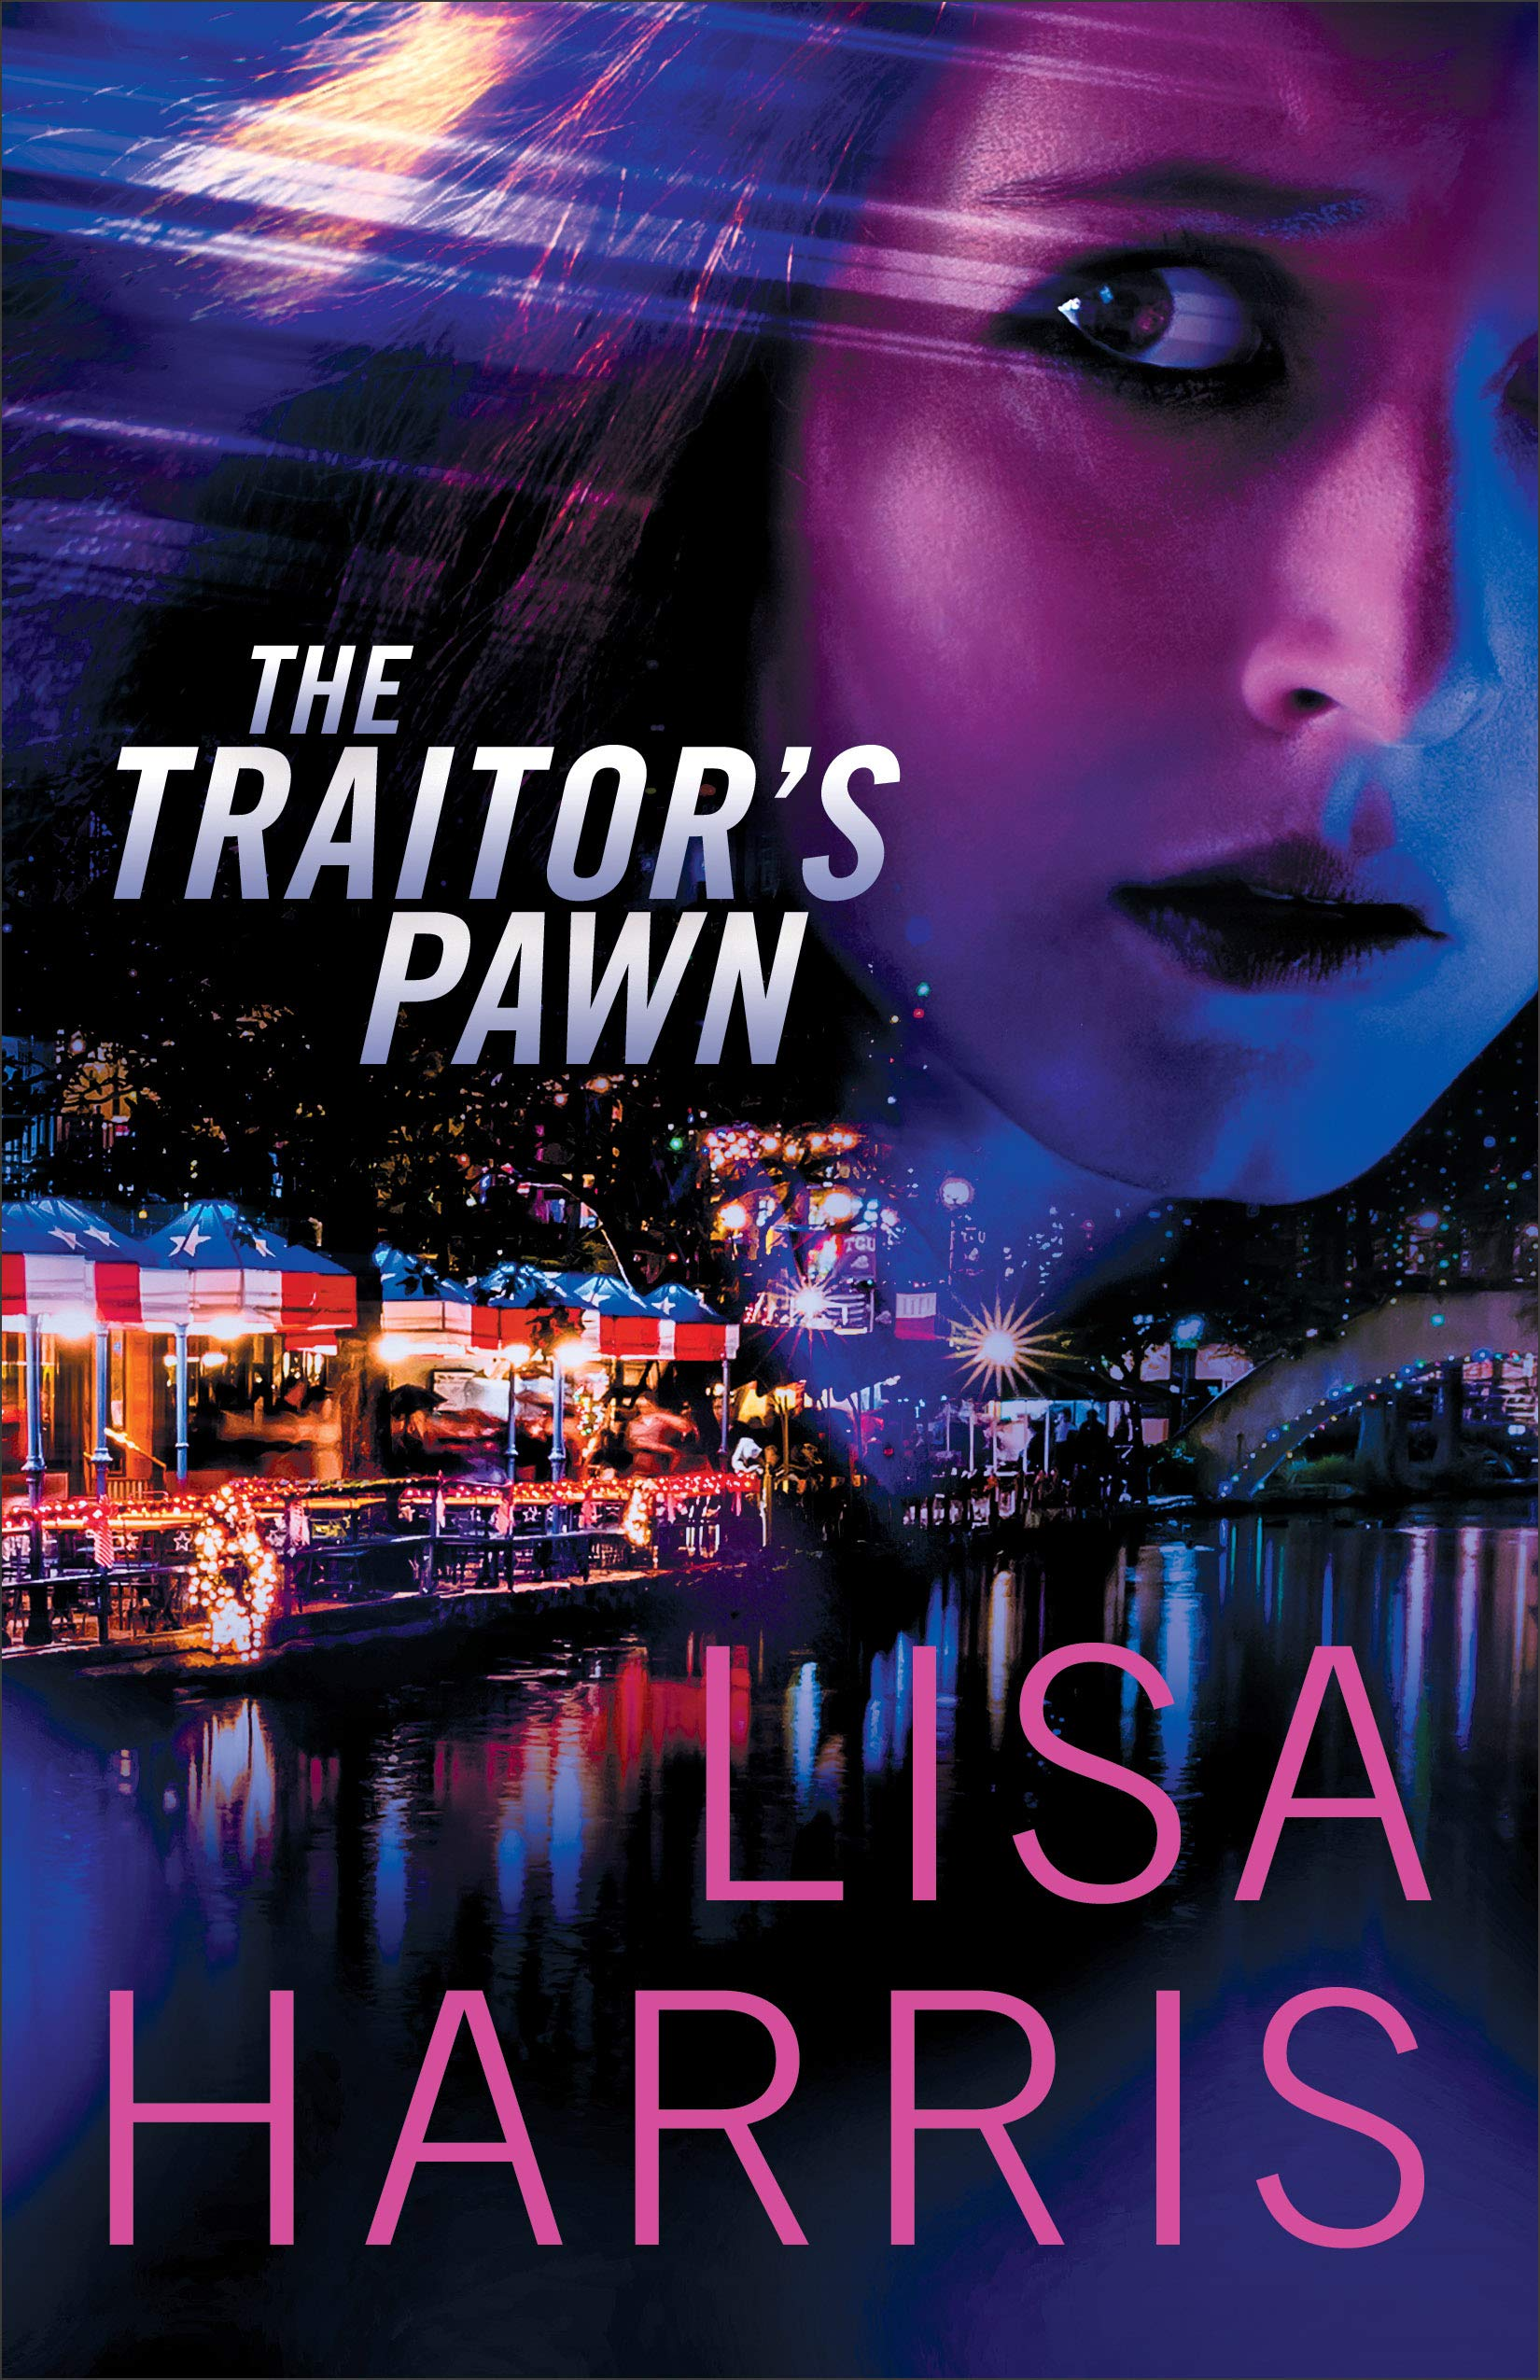 The Traitor's Pawn by Lisa Harris {A Book Review}